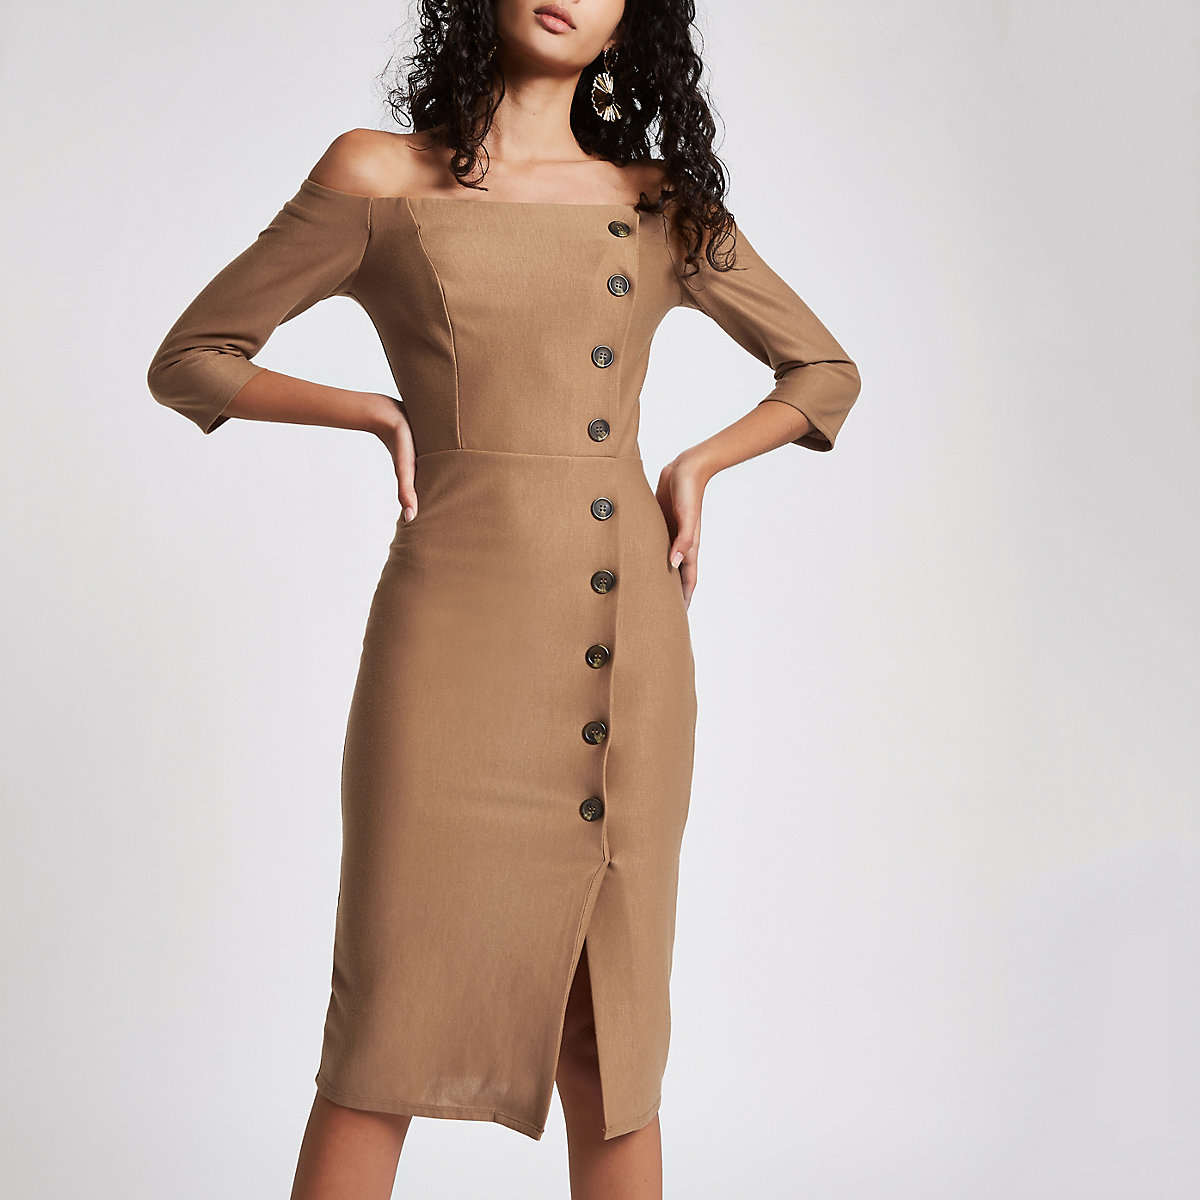 Beige bardot button front bodycon midi dress - Bodycon Dresses ... 7f02045c4